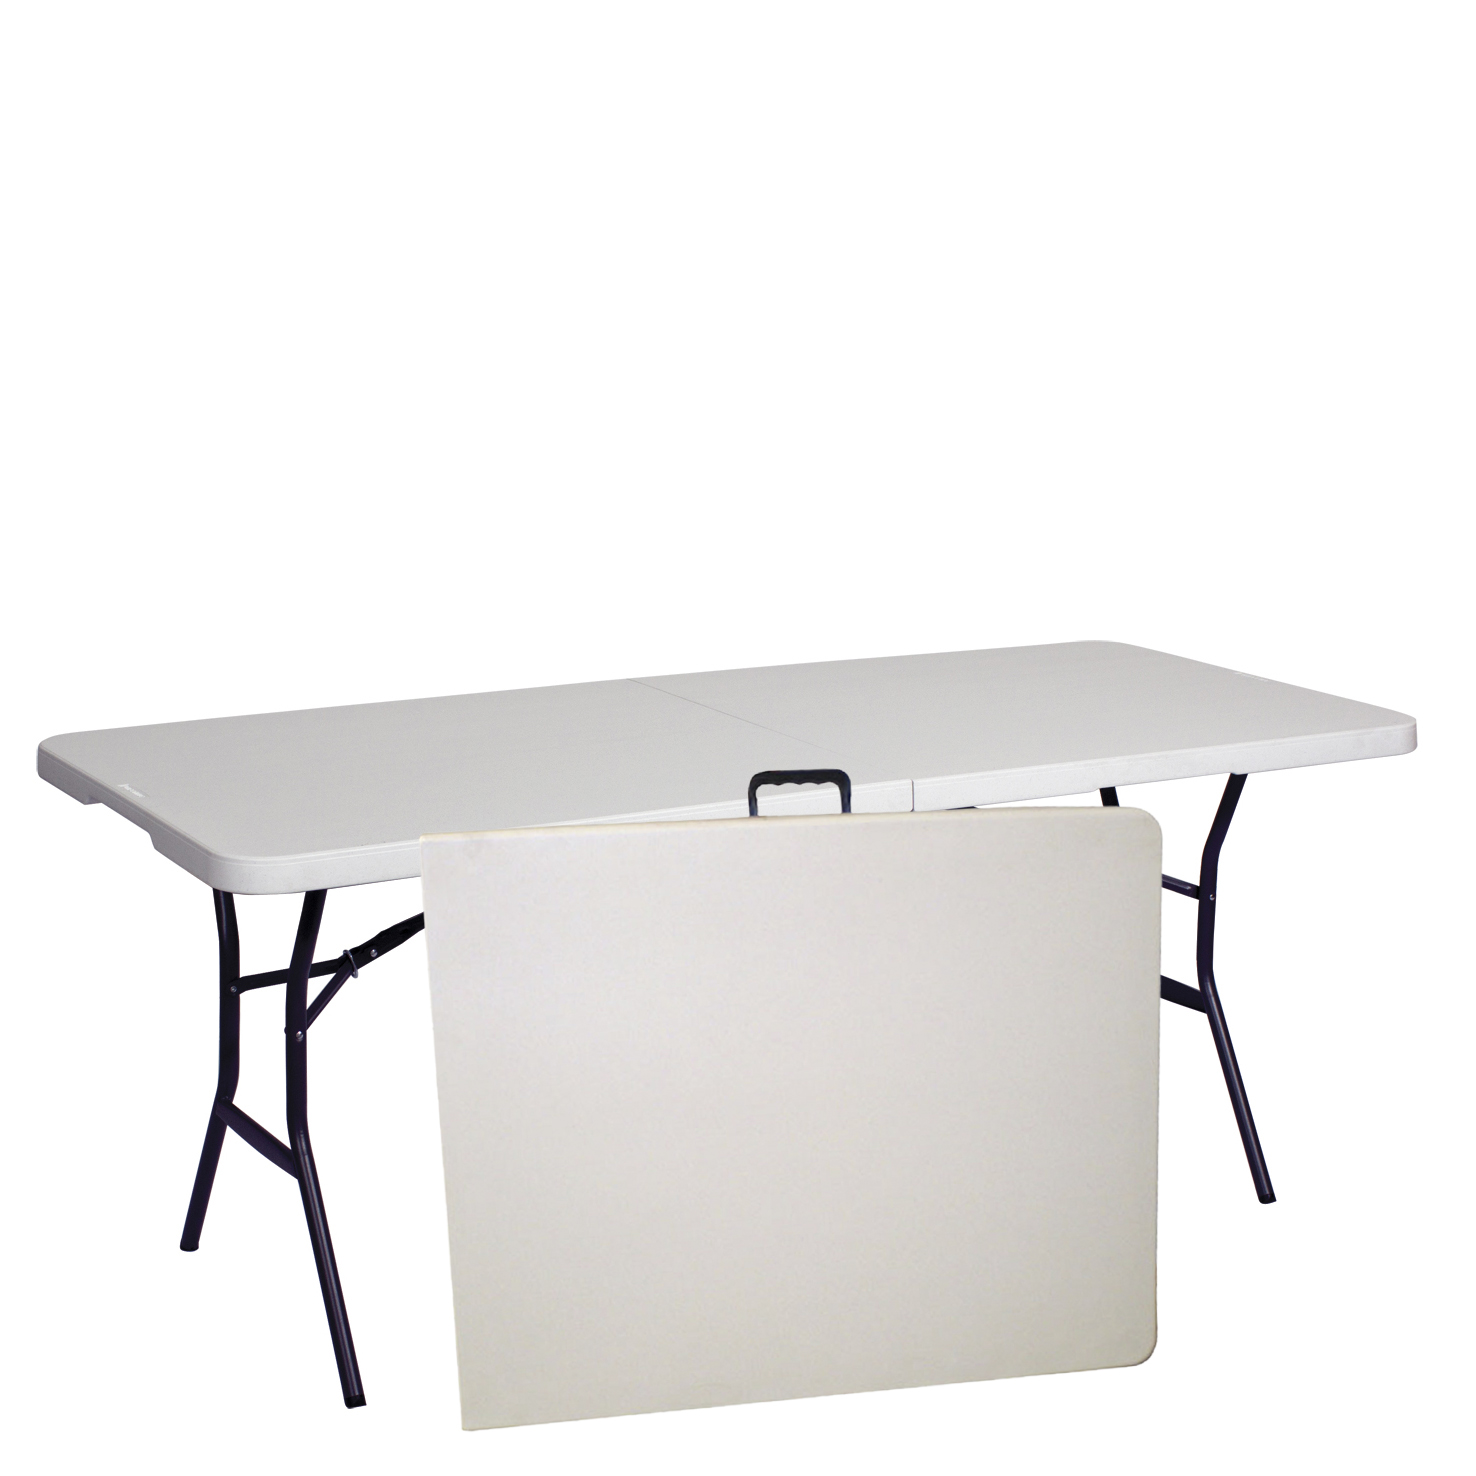 Folding tables 6ft images dining table folding images for for Table 6 feet